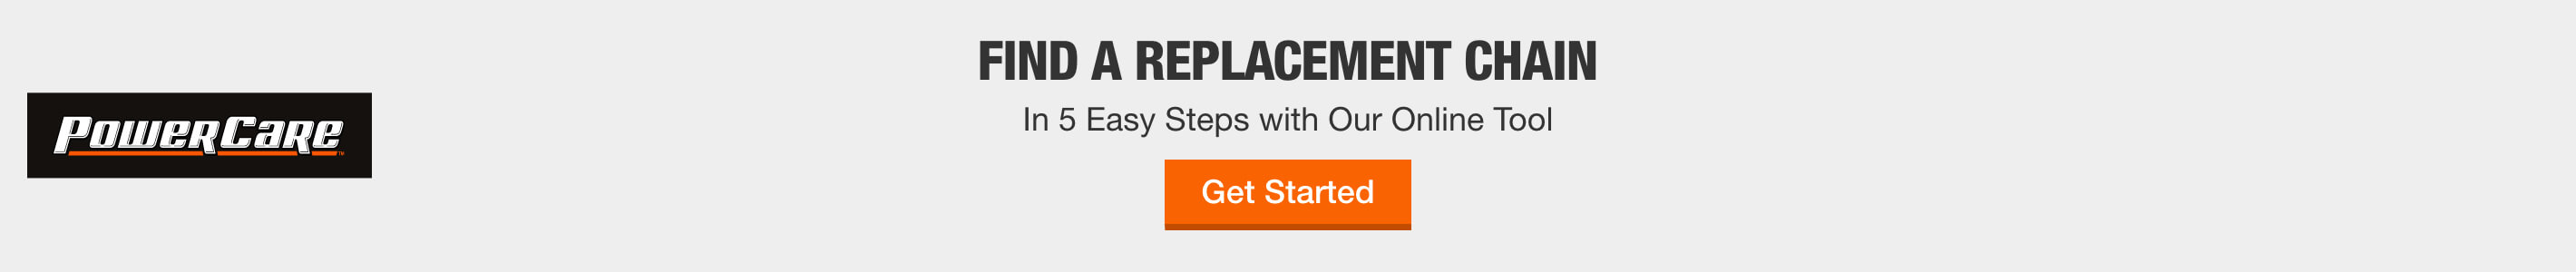 Find a Replacement Chain In 5 Easy Steps with Our Online Tool - Get Started